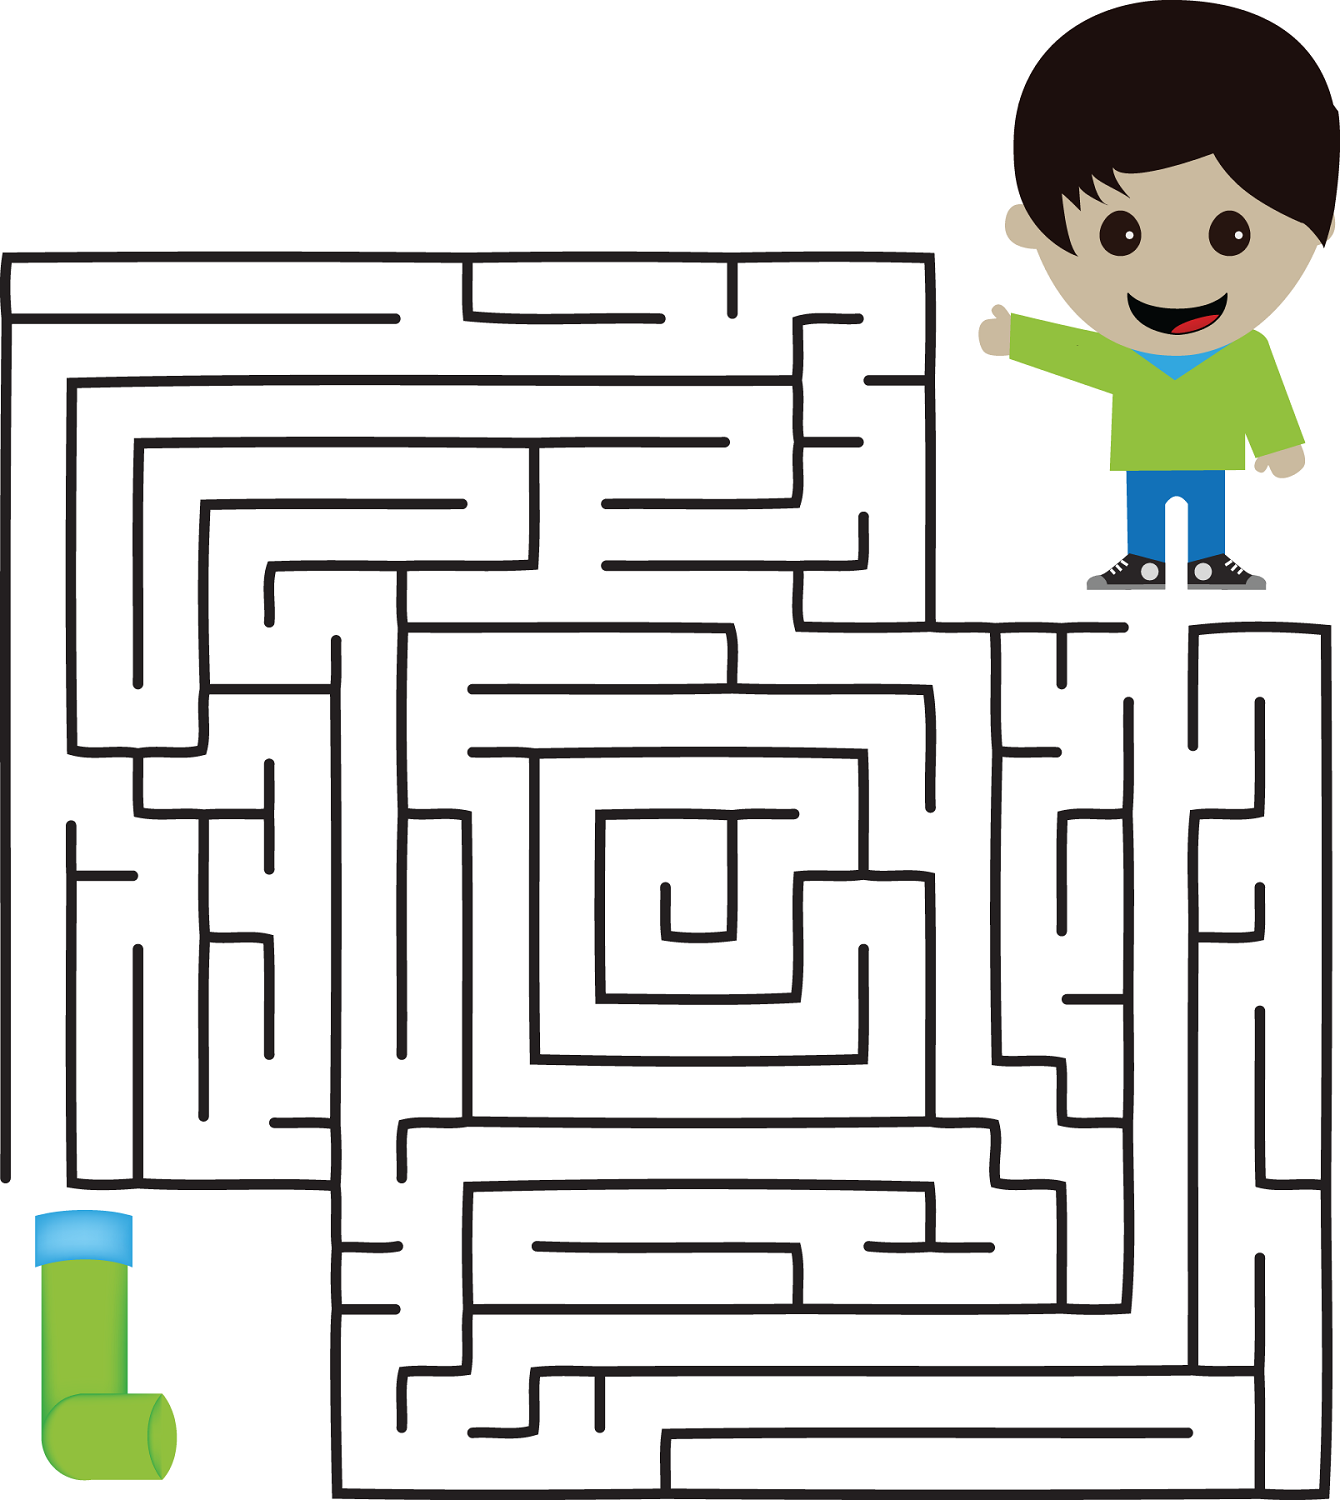 mazes for kids to print